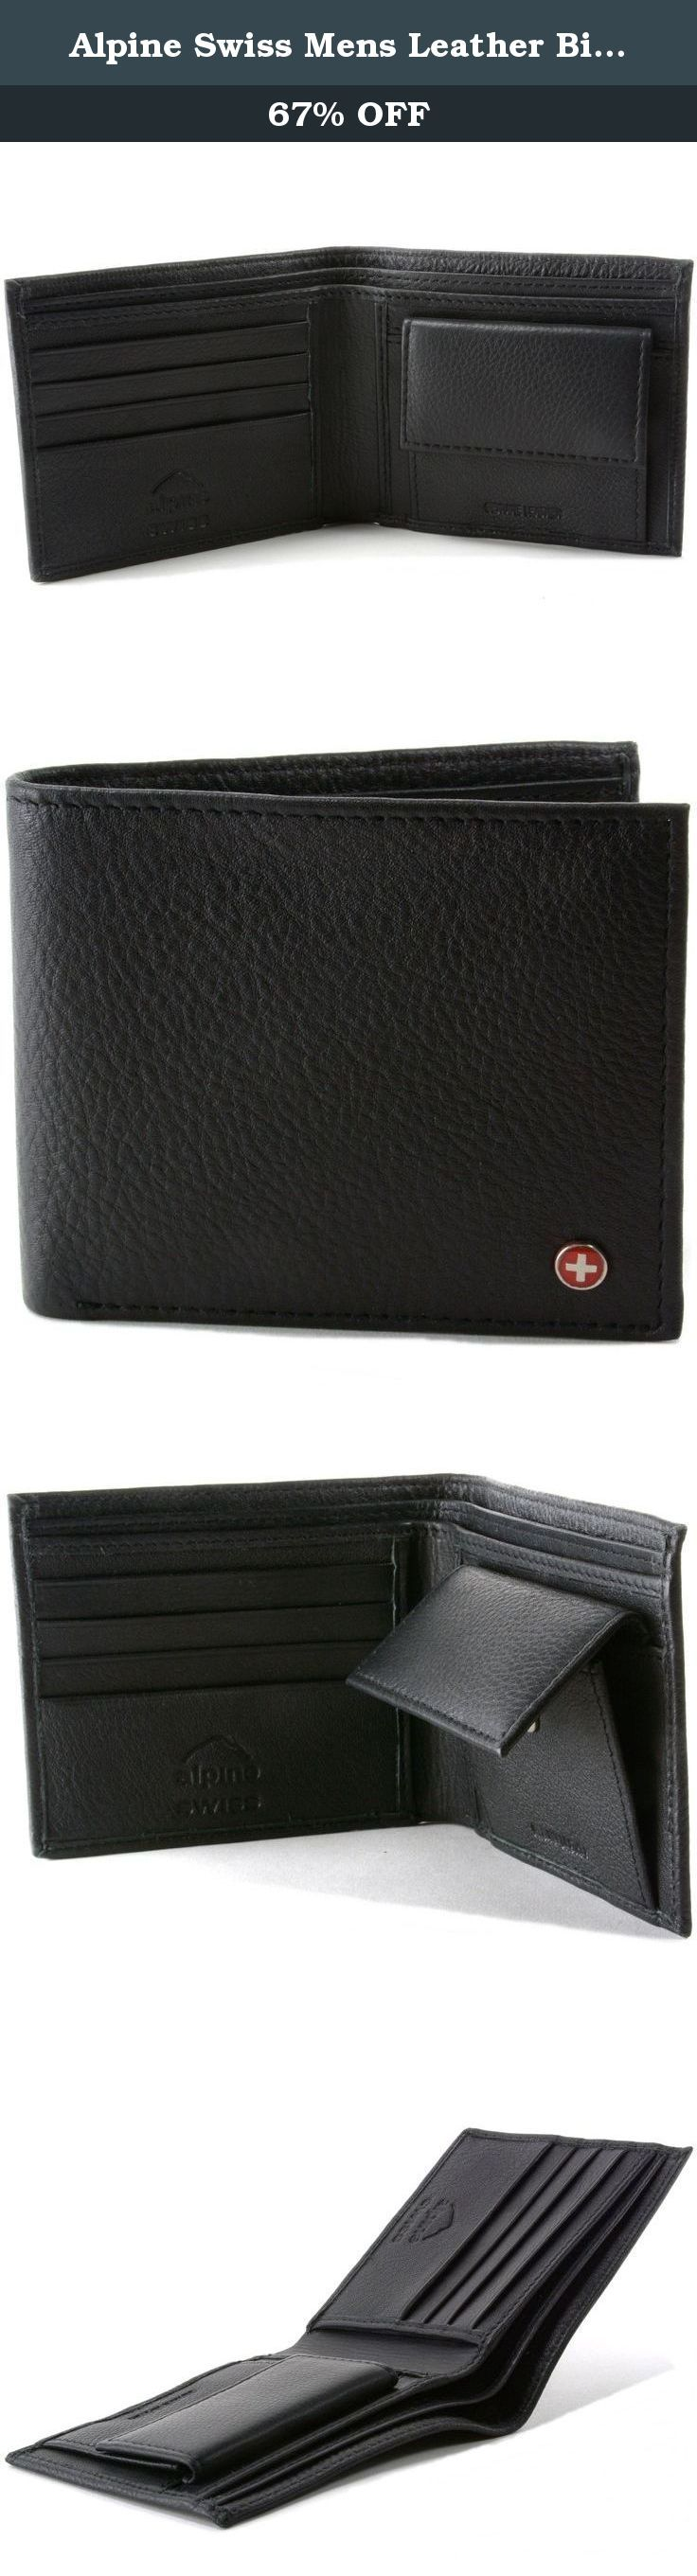 Alpine Swiss Mens Leather Bifold Wallet with Coin Pocket Purse Pouch & 2 Bill Sections. Alpine Swiss Mens Leather Bifold Wallet with Coin Pocket Purse Pouch & 2 Bill Sections.